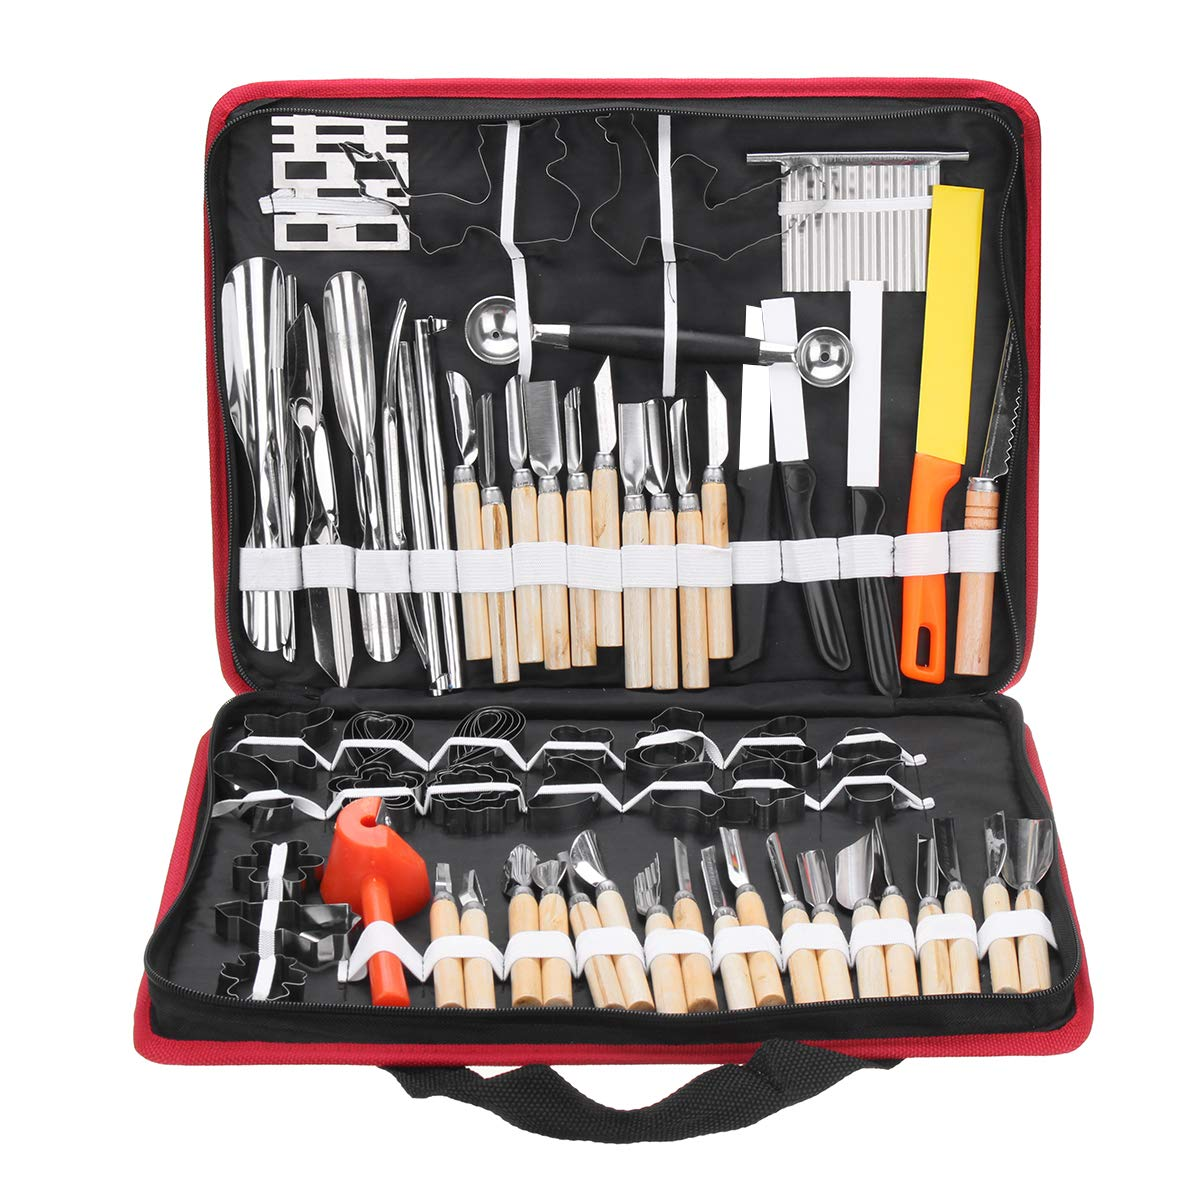 WCHAOEN 80Pcs Portable Carving Tool Vegetable Food Fruit Wood Box Carving Knife Set Accessories Tool